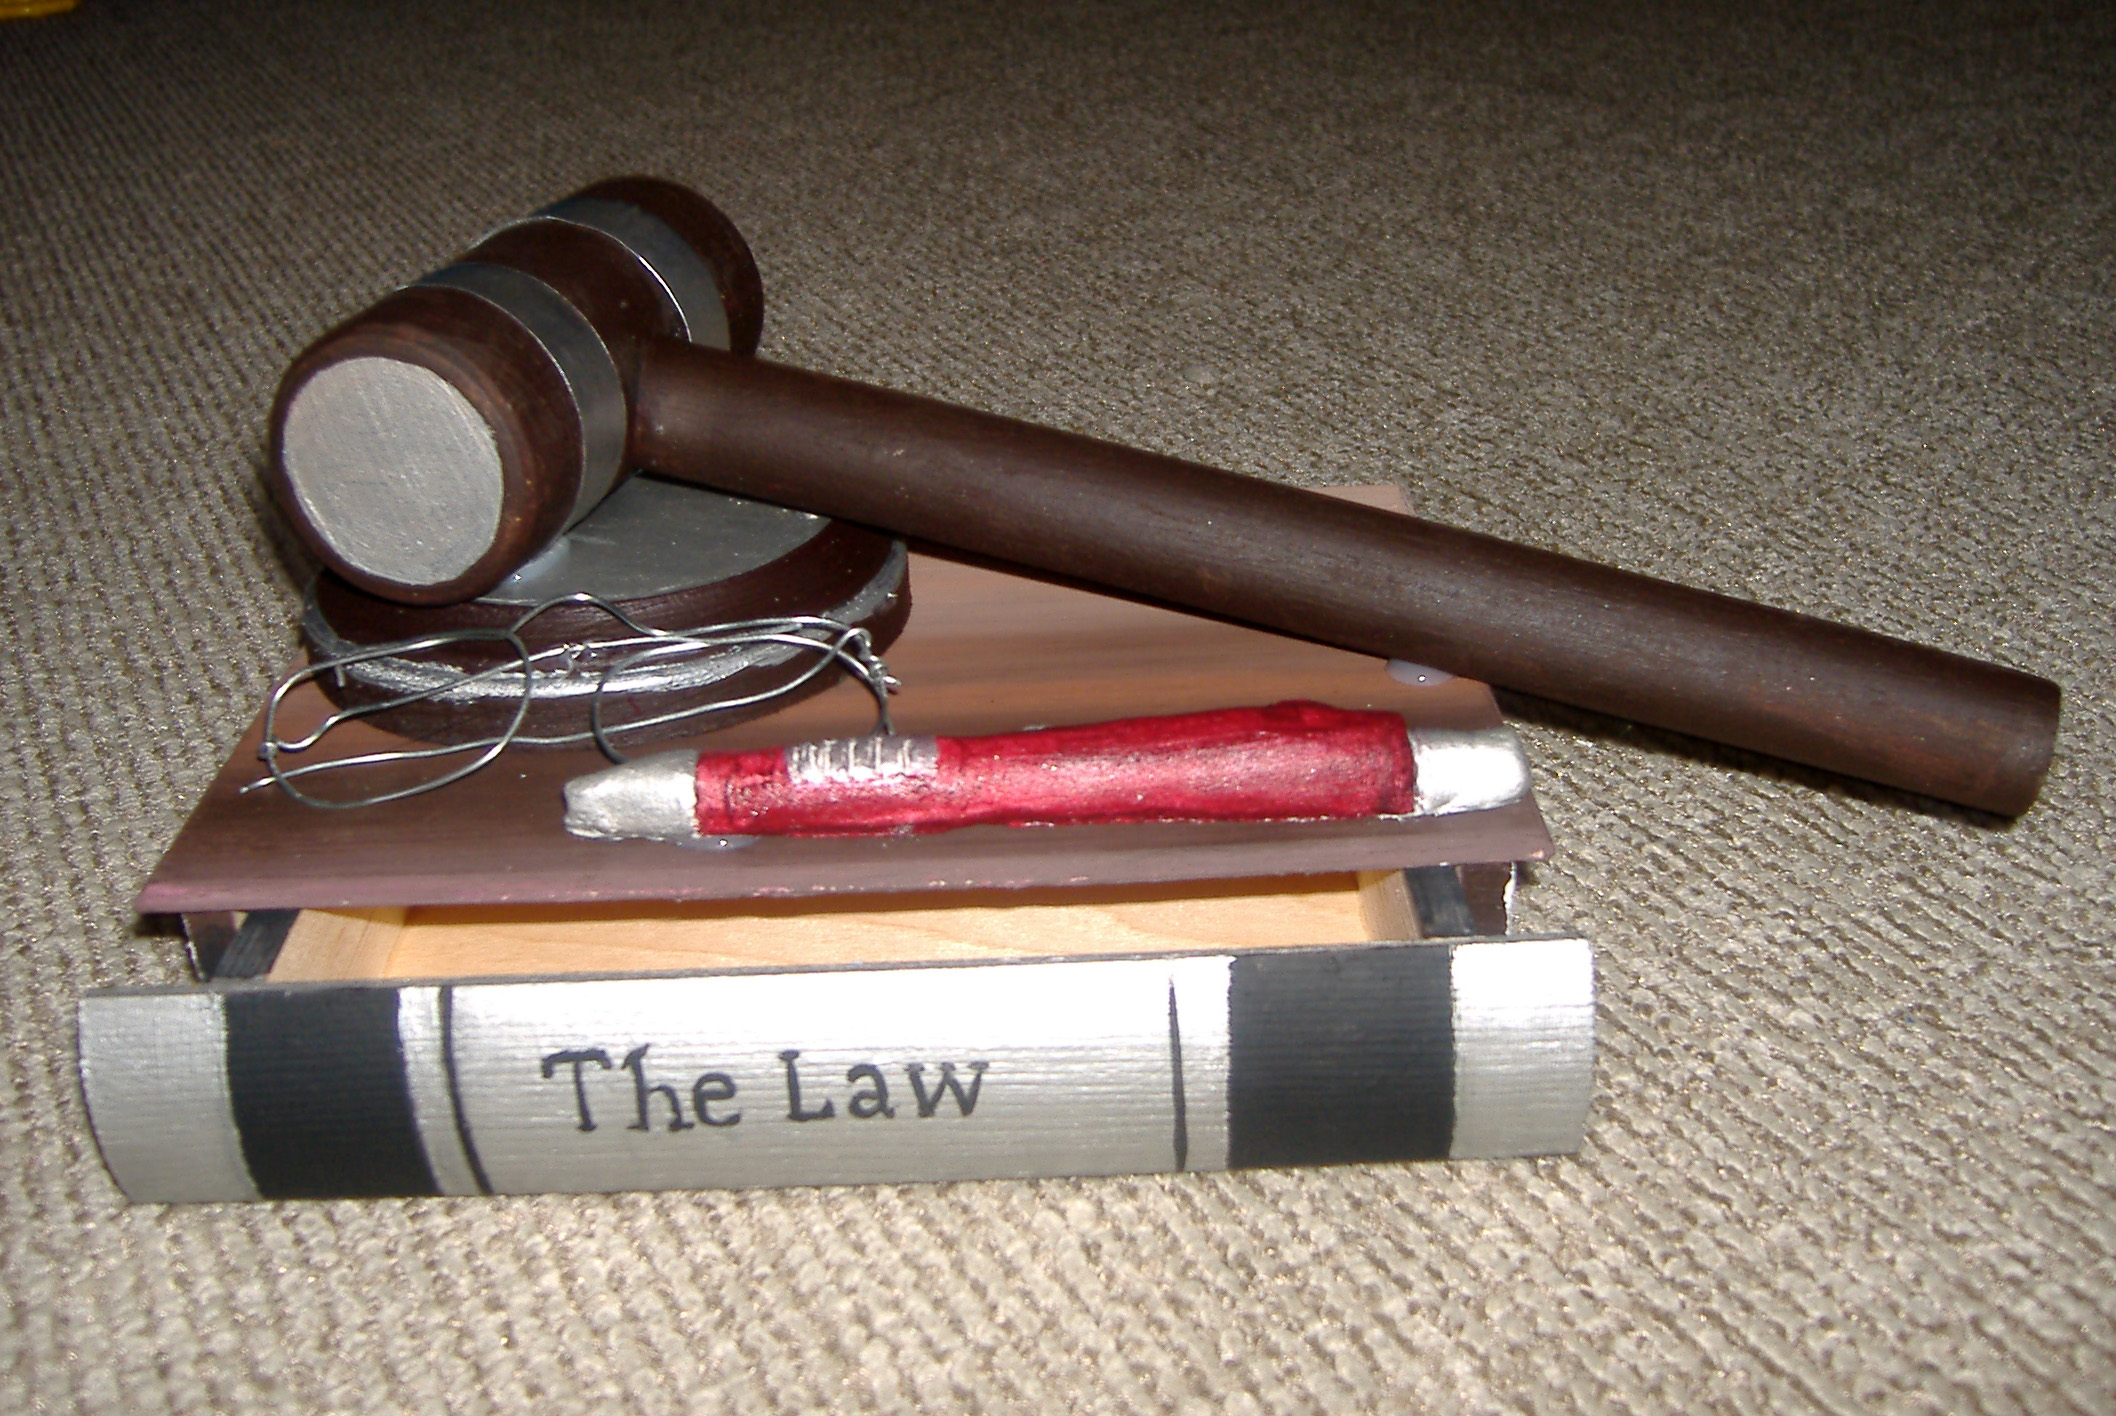 DESCRIPTION: Delighting In The Law